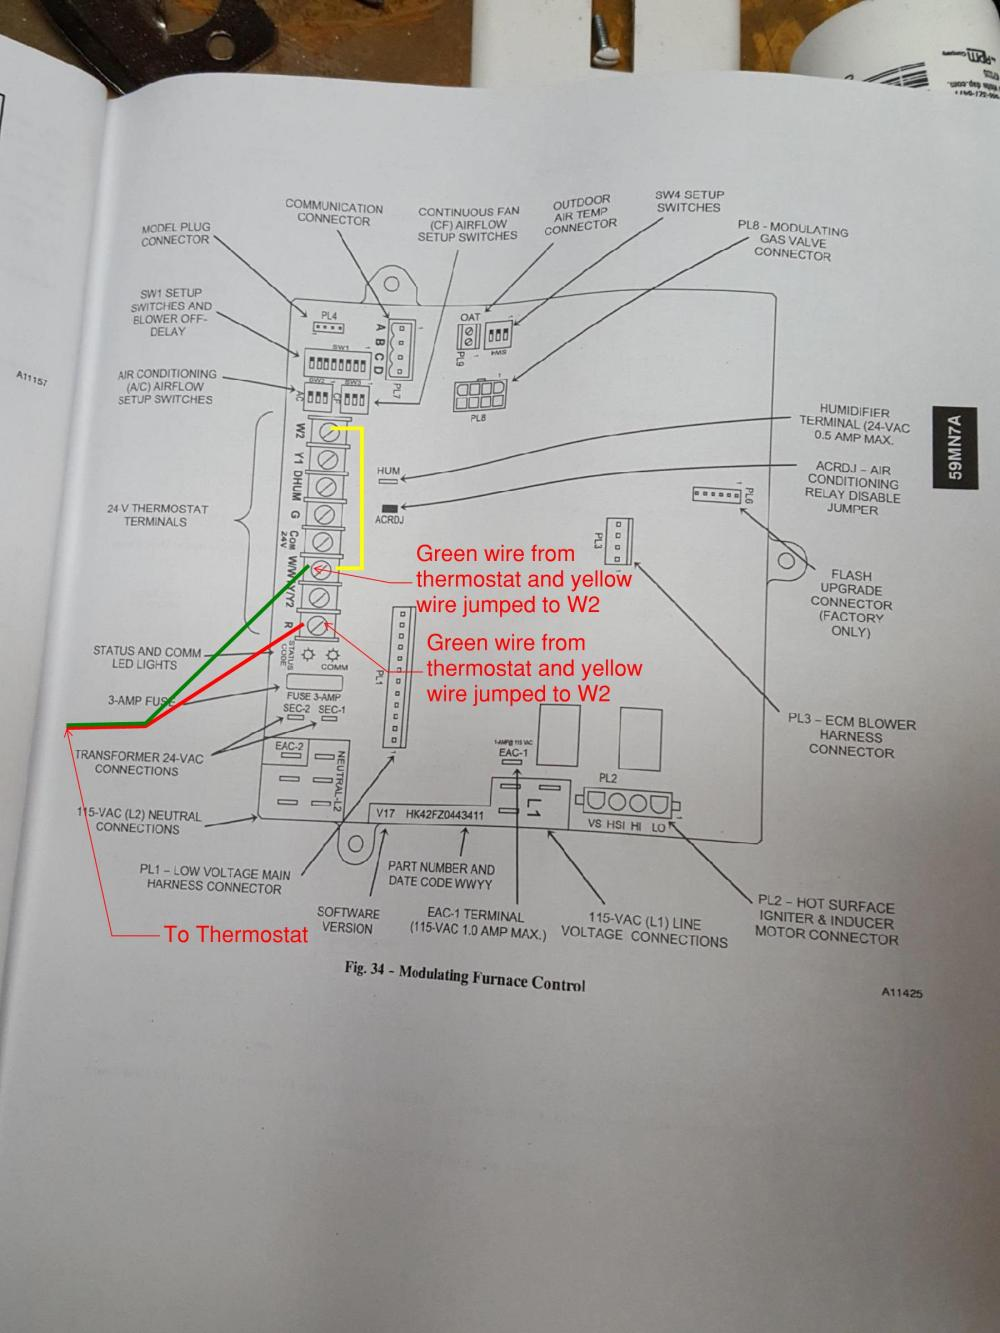 medium resolution of how to hook up new 5 wire hvac cable to newer hvac unit with only 2 wires coming from it with photos